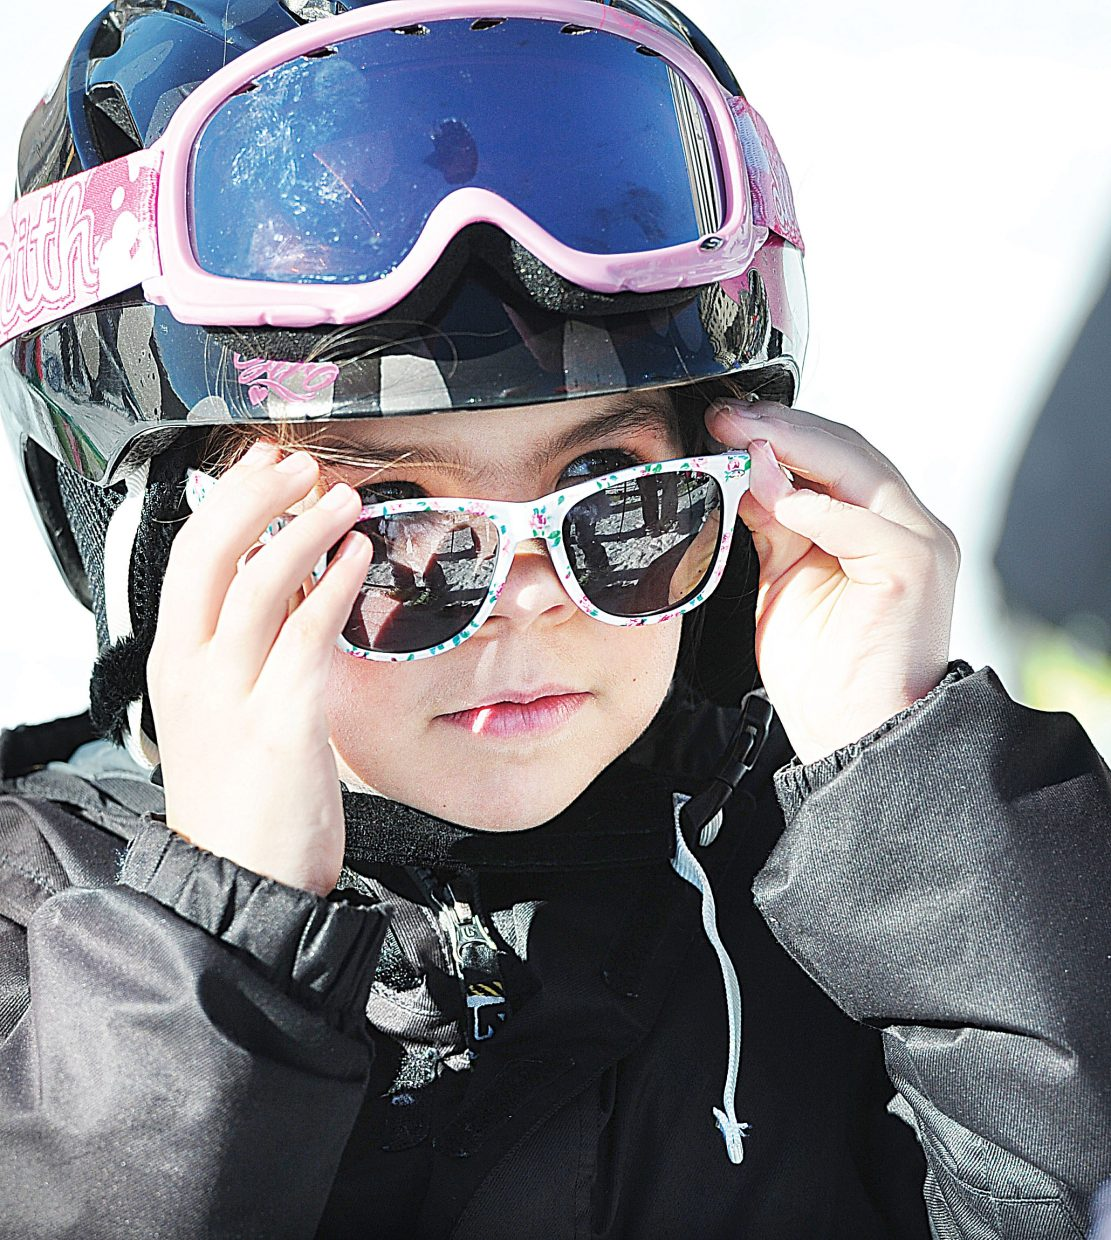 """Wylie High puts on a new pair of sunglasses that she got in the """"goodie"""" bag at the 2015 Soda Pop Slalom, which took place Friday at Steamboat Ski Area. The Steamboat Springs Winter Carnival tradition is a right-of-passage for young skiers in the Steamboat Springs area."""